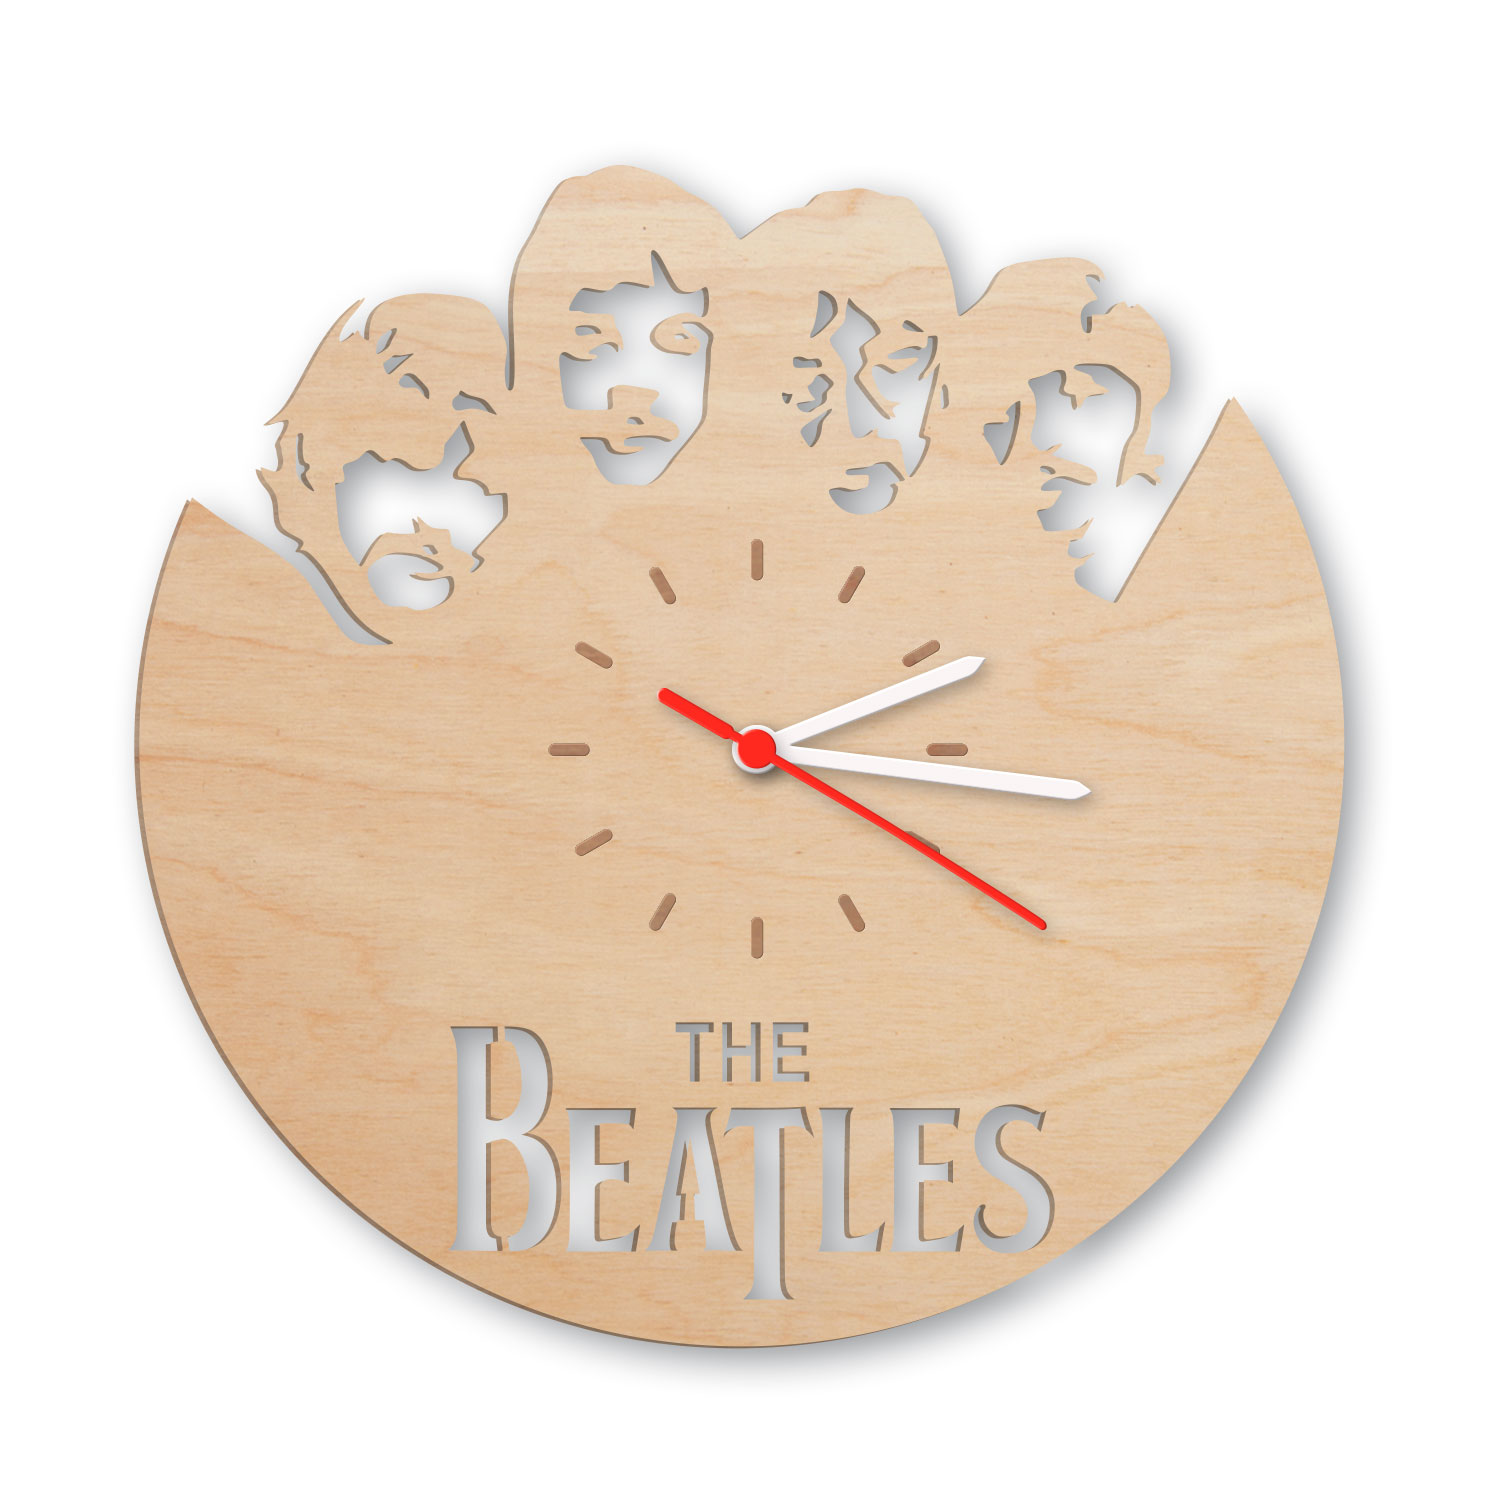 wanduhr aus holz the beatles einfach pers nlich schenken. Black Bedroom Furniture Sets. Home Design Ideas